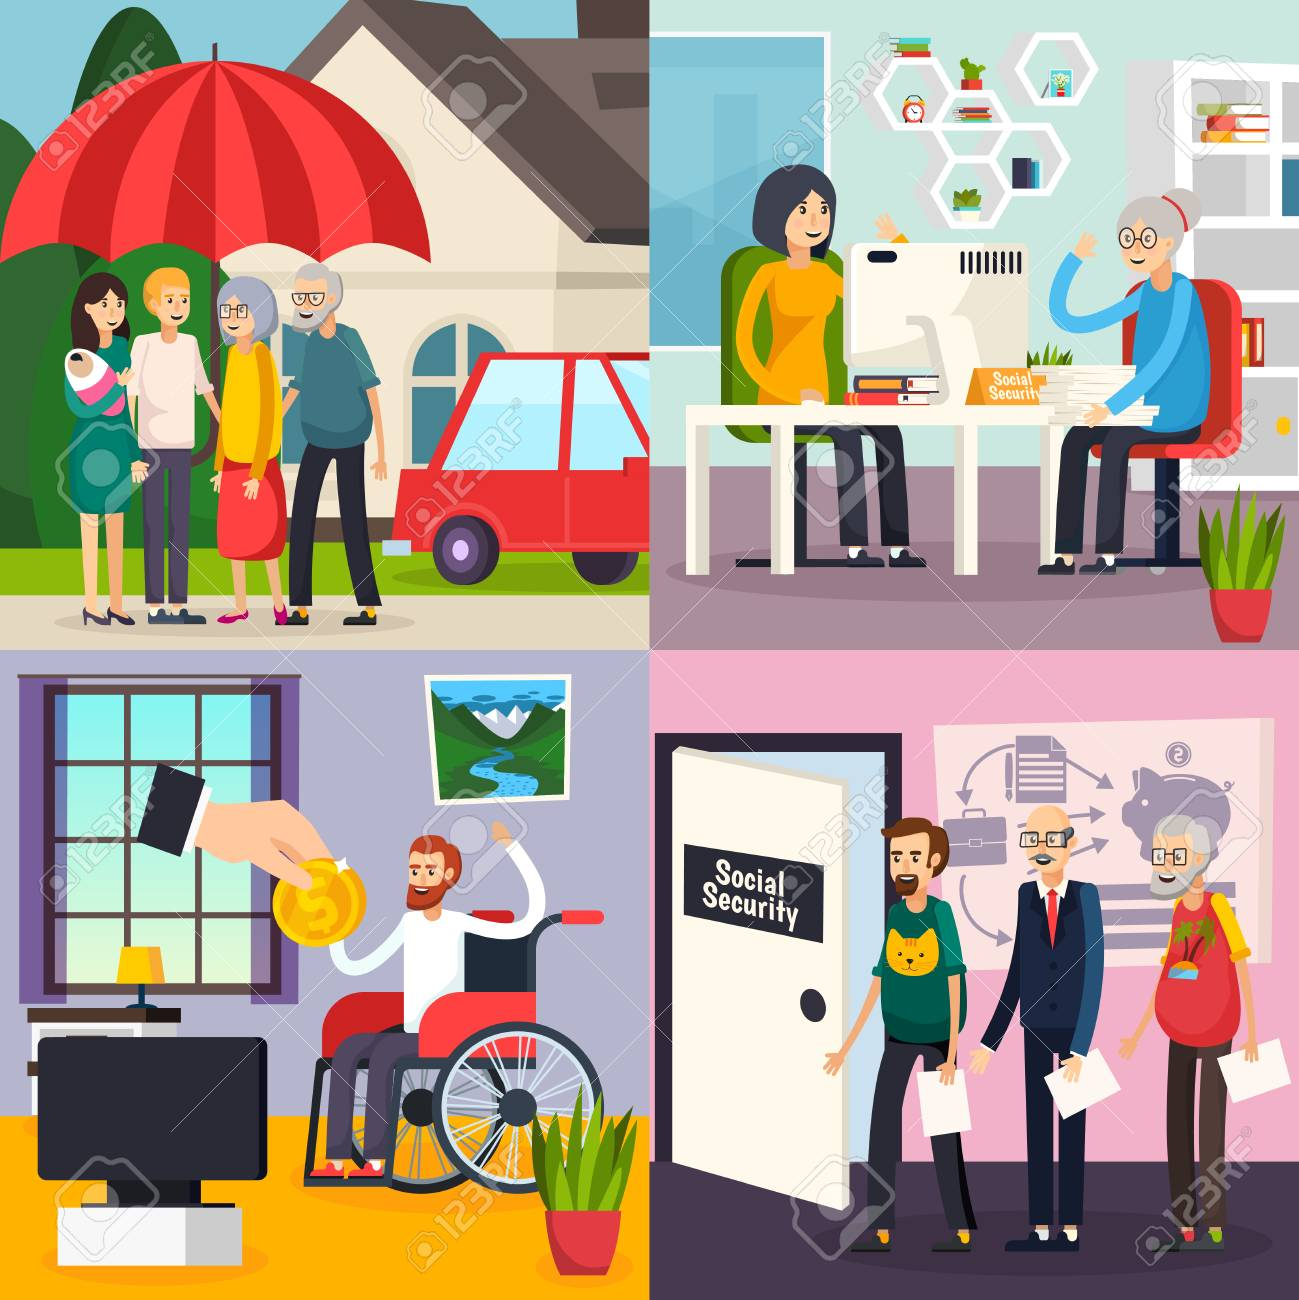 Social security orthogonal design concept with family protection, retirement welfare, disability and unemployment benefits isolated vector illustration. - 94049323